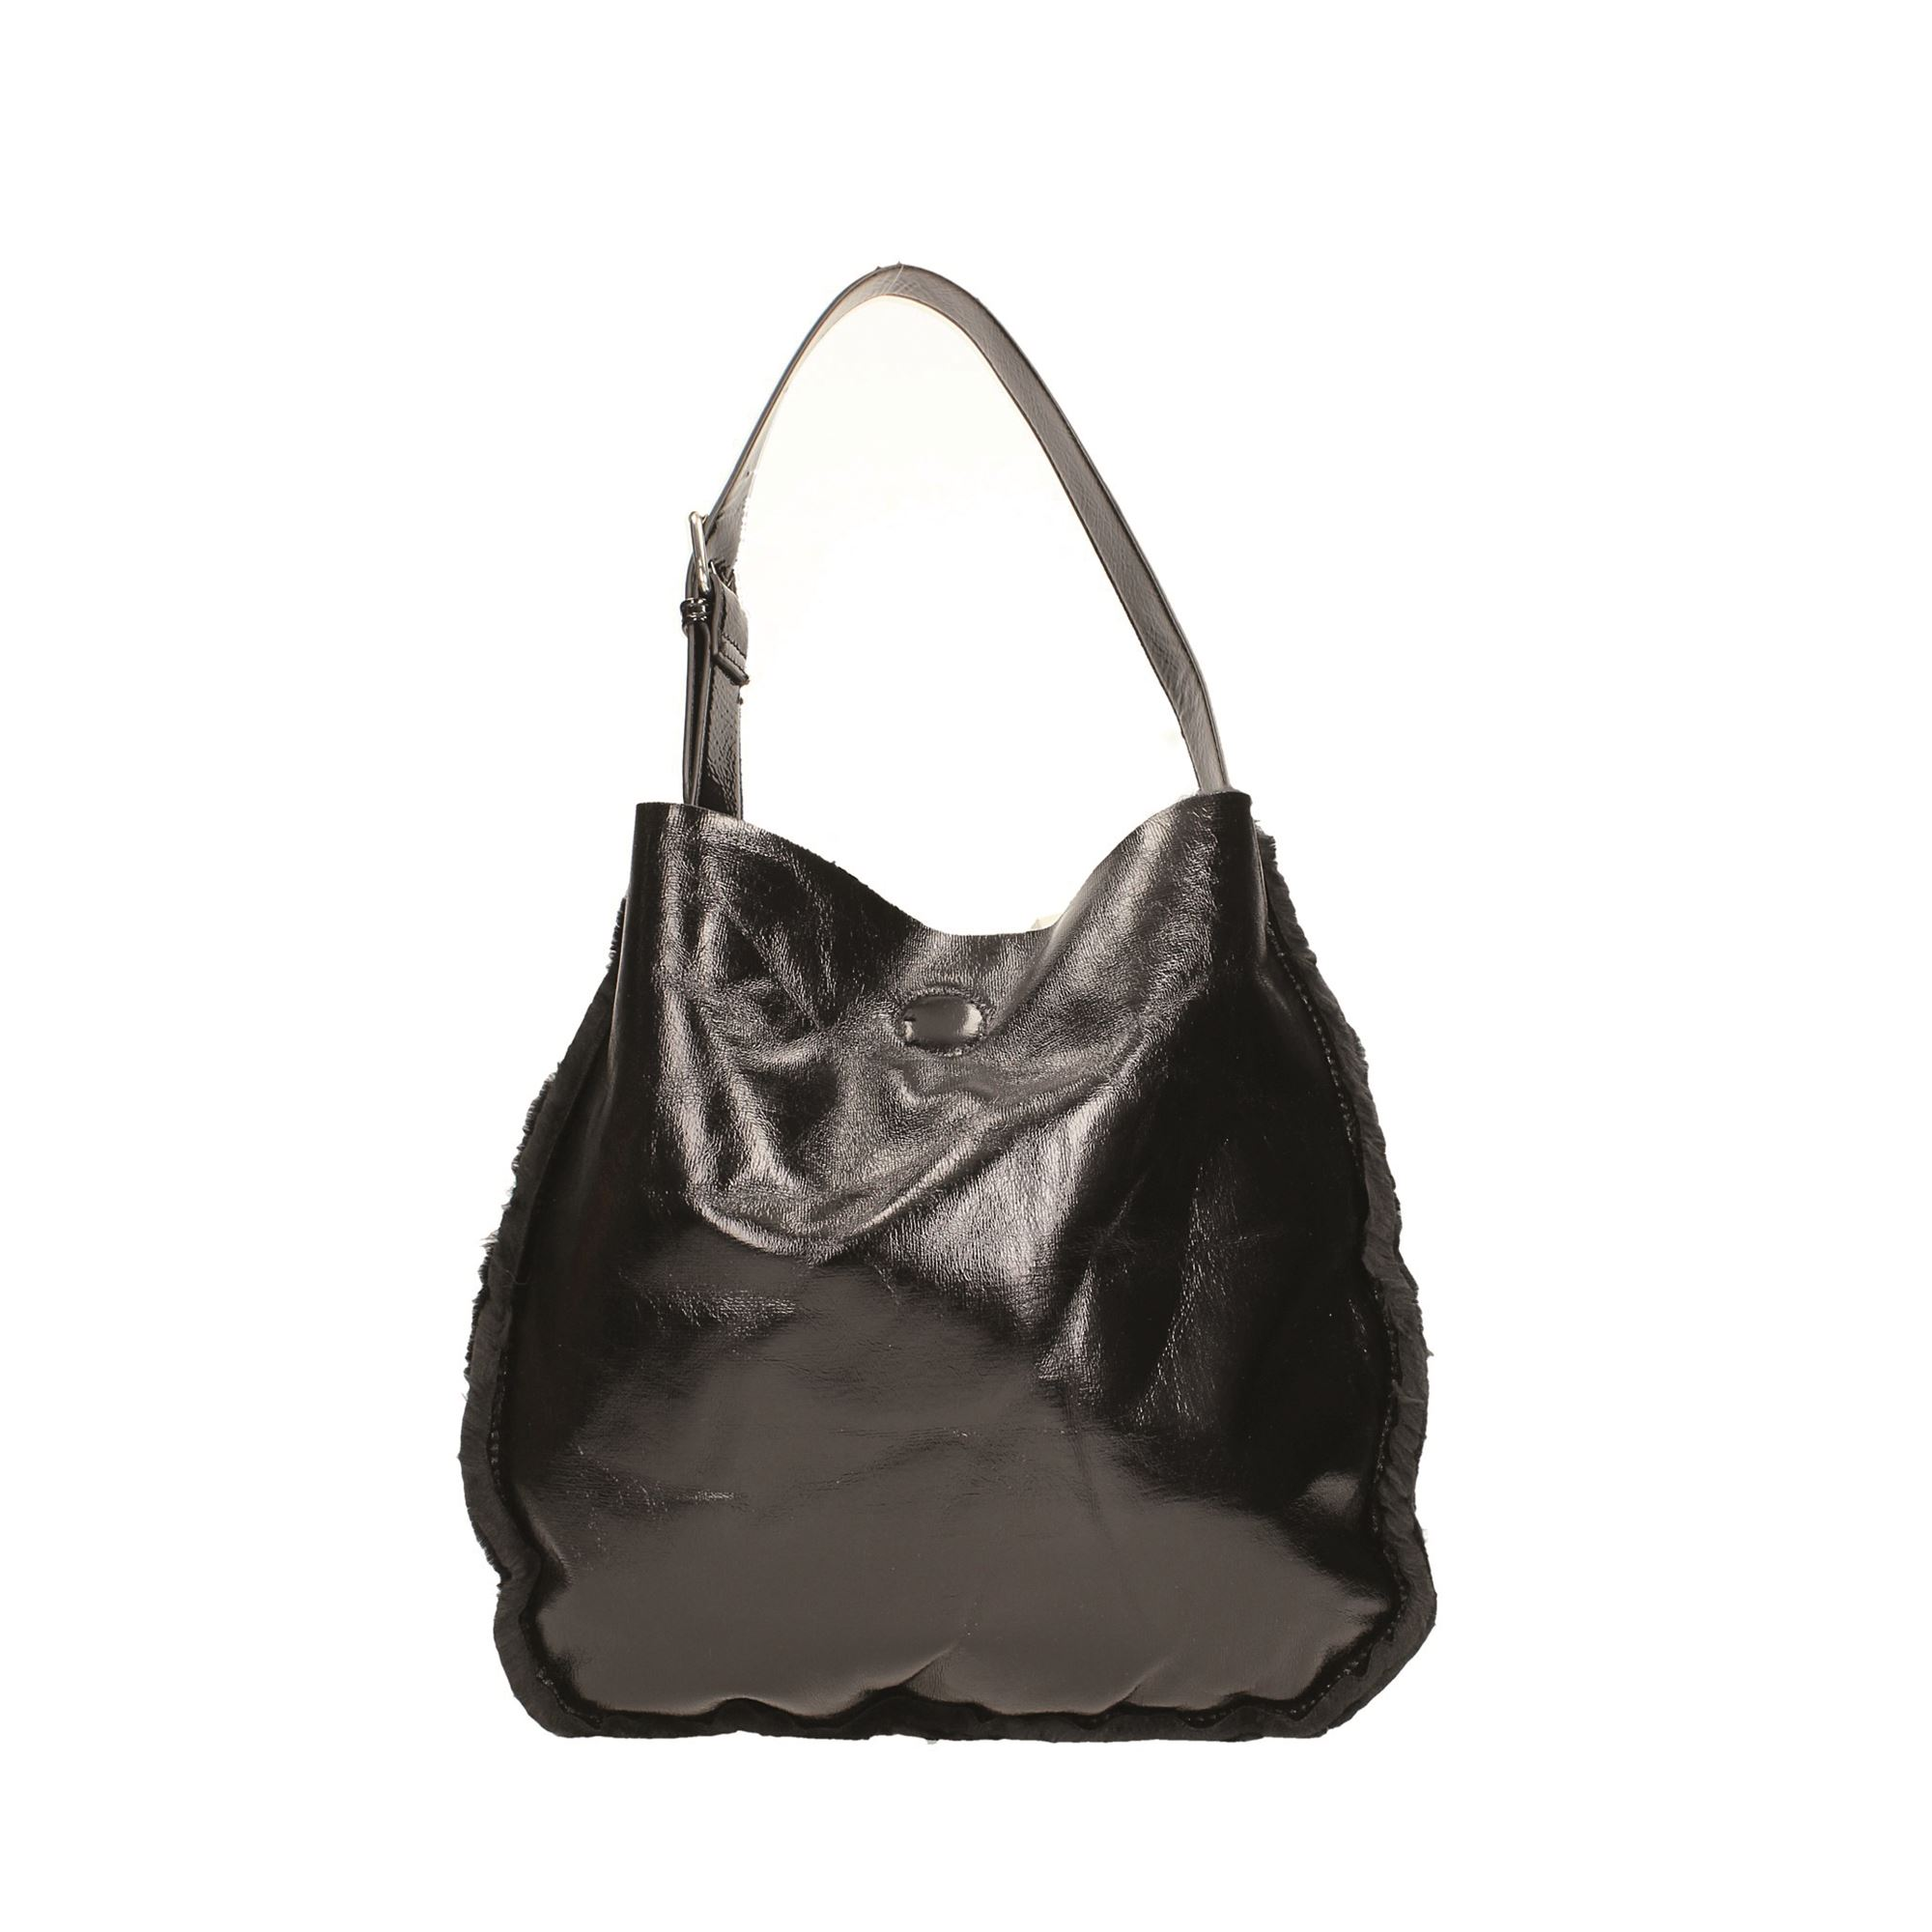 Tata Italia Accessories Woman Bags Black 17C312